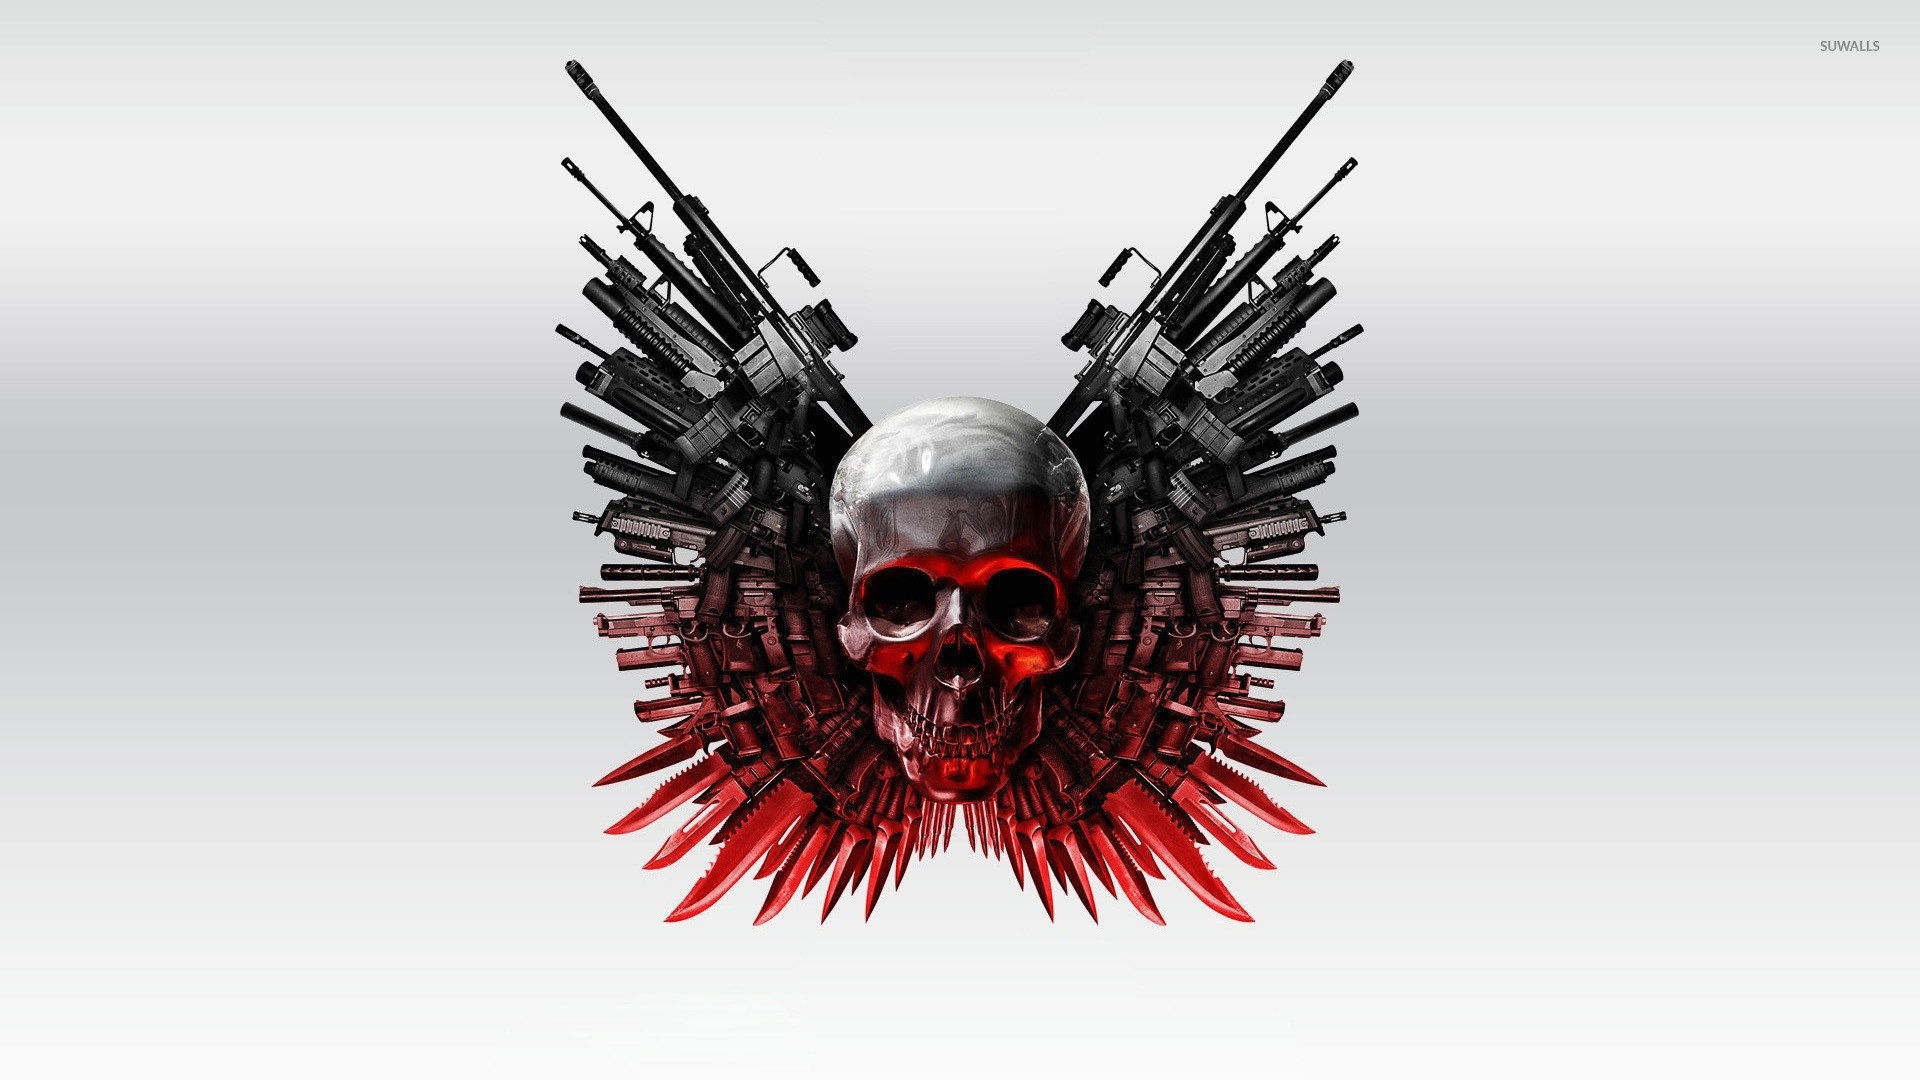 The Expendables 2 2012 Free Wallpaper. The Expendables 2 2012 Wallpaper  Background | Movie Wallpapers | Pinterest | Wallpaper, Movie wallpapers and  Movie